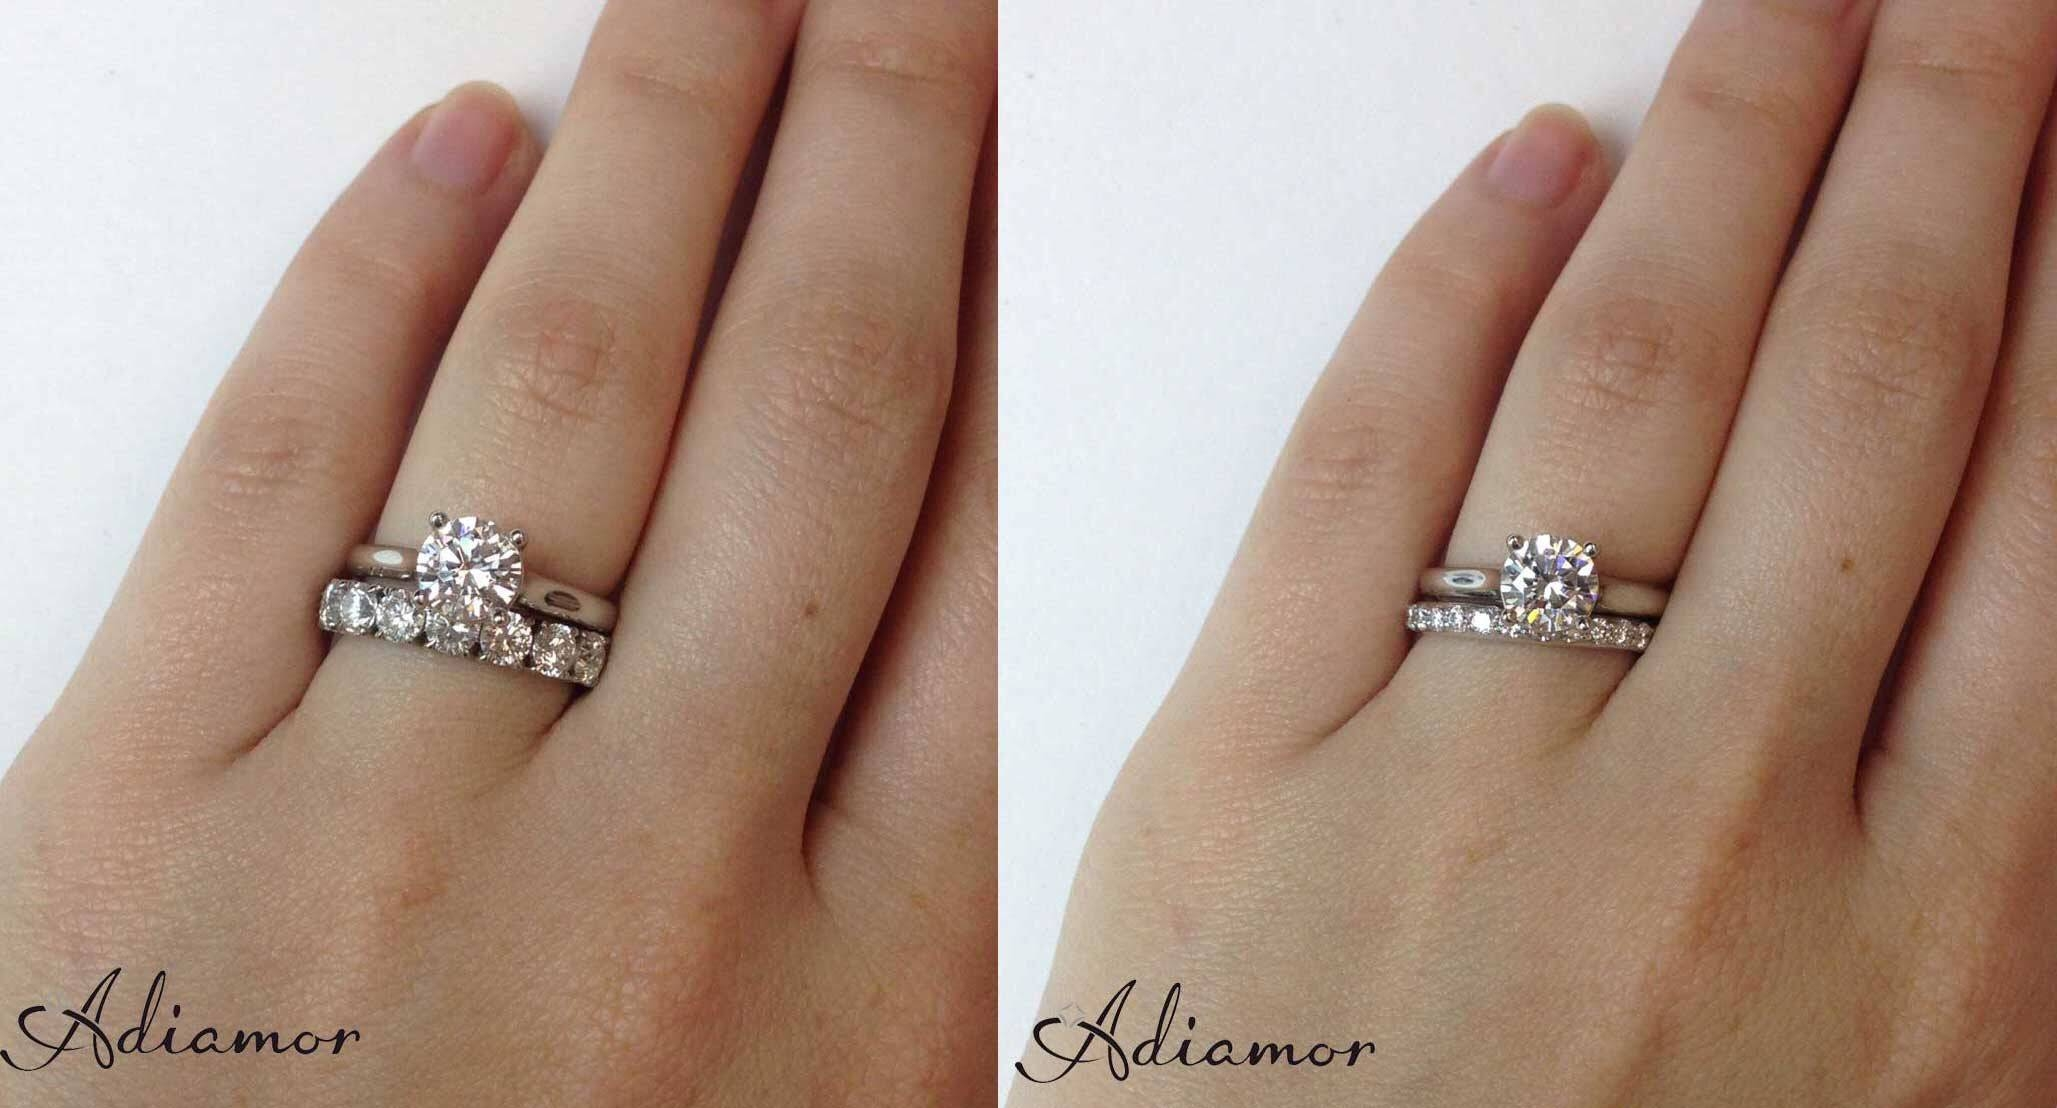 Solitaire Engagement Ring And Diamond Wedding Band Tags : Wedding In 2018 Solitaire Engagement Rings With Wedding Bands (View 4 of 15)